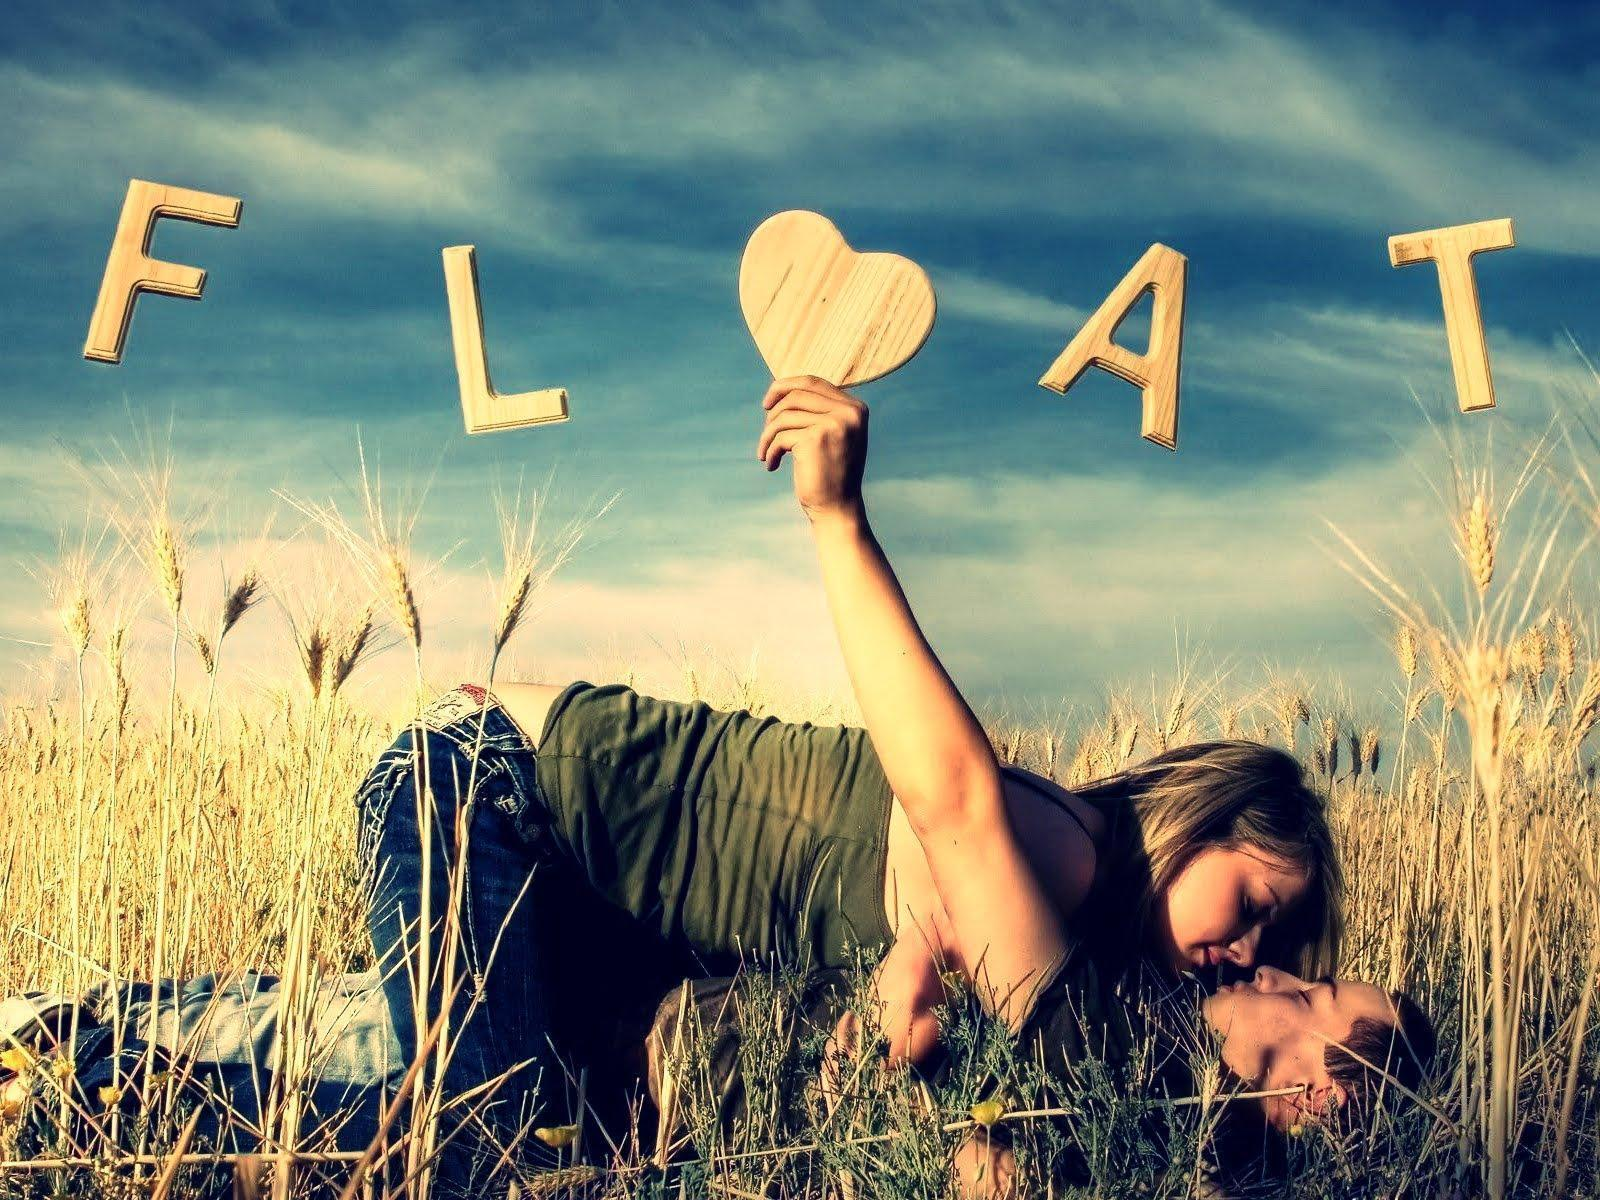 Wallpaper download new love - Latest Best Love Wallpapers Wid Quotes